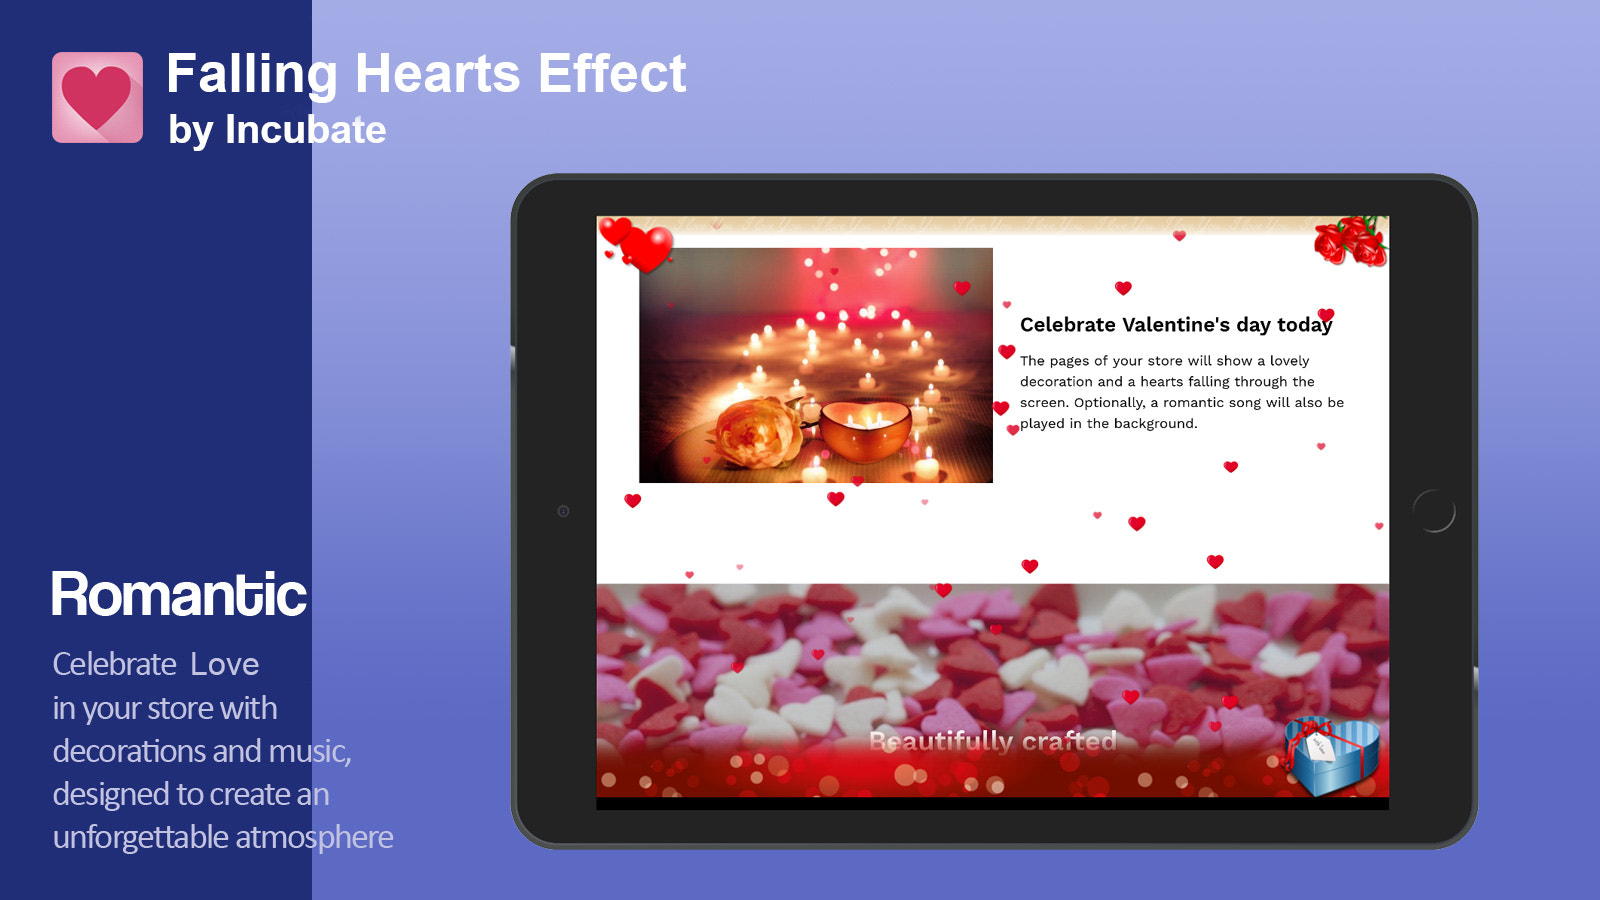 Surprise your customers and get them in the right mood for love